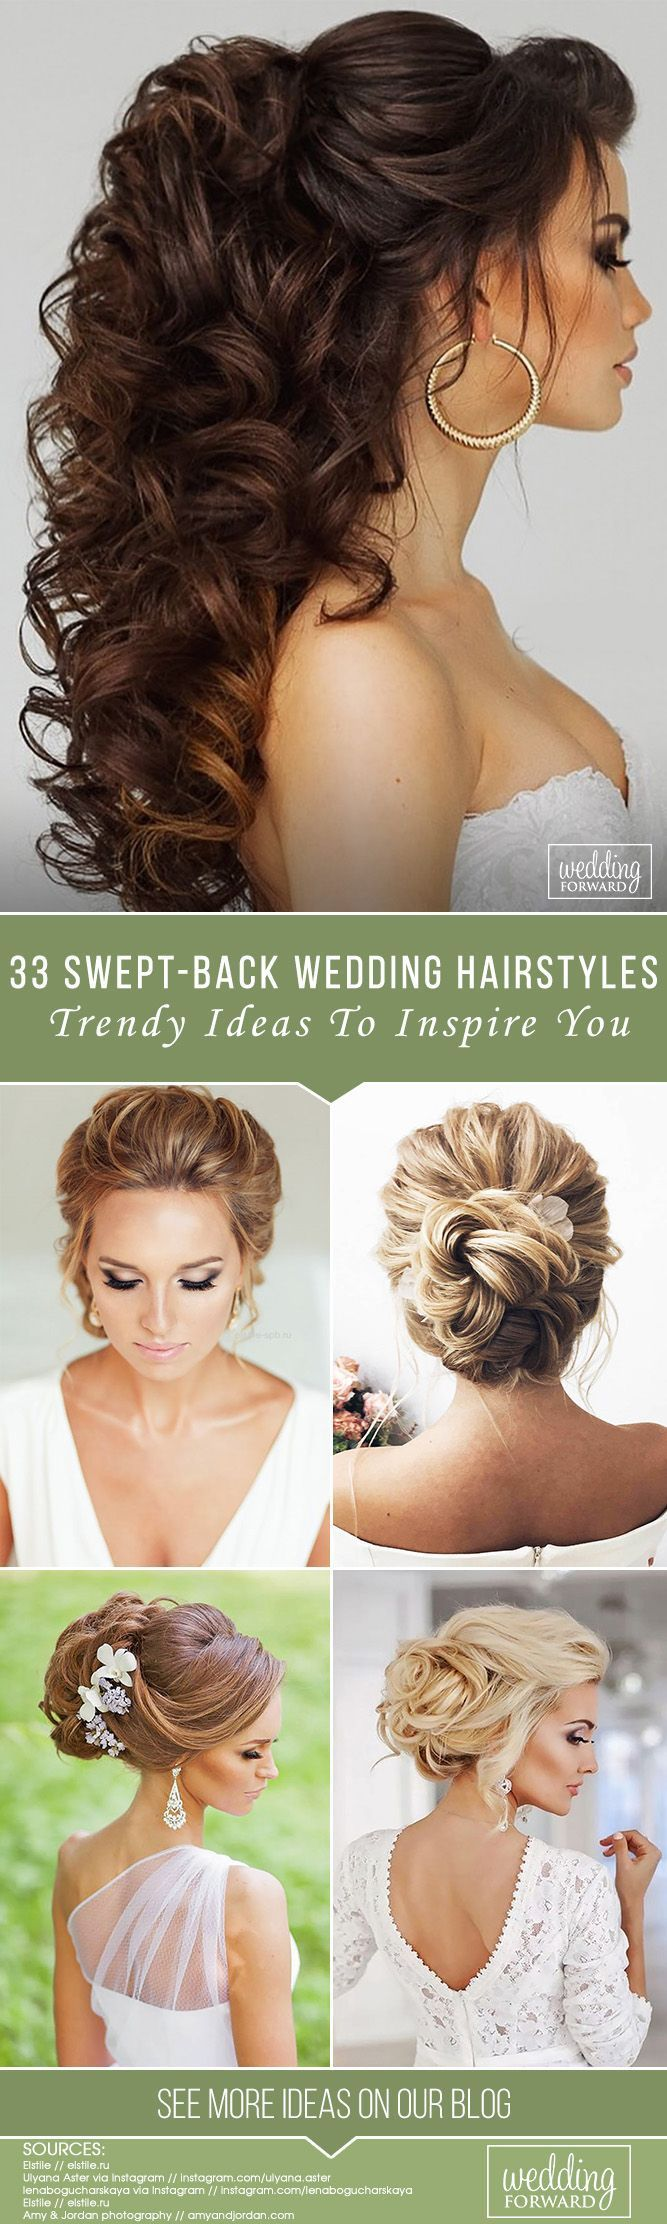 wedding hair styles 36 trendy swept back wedding hairstyles frisuren 1337